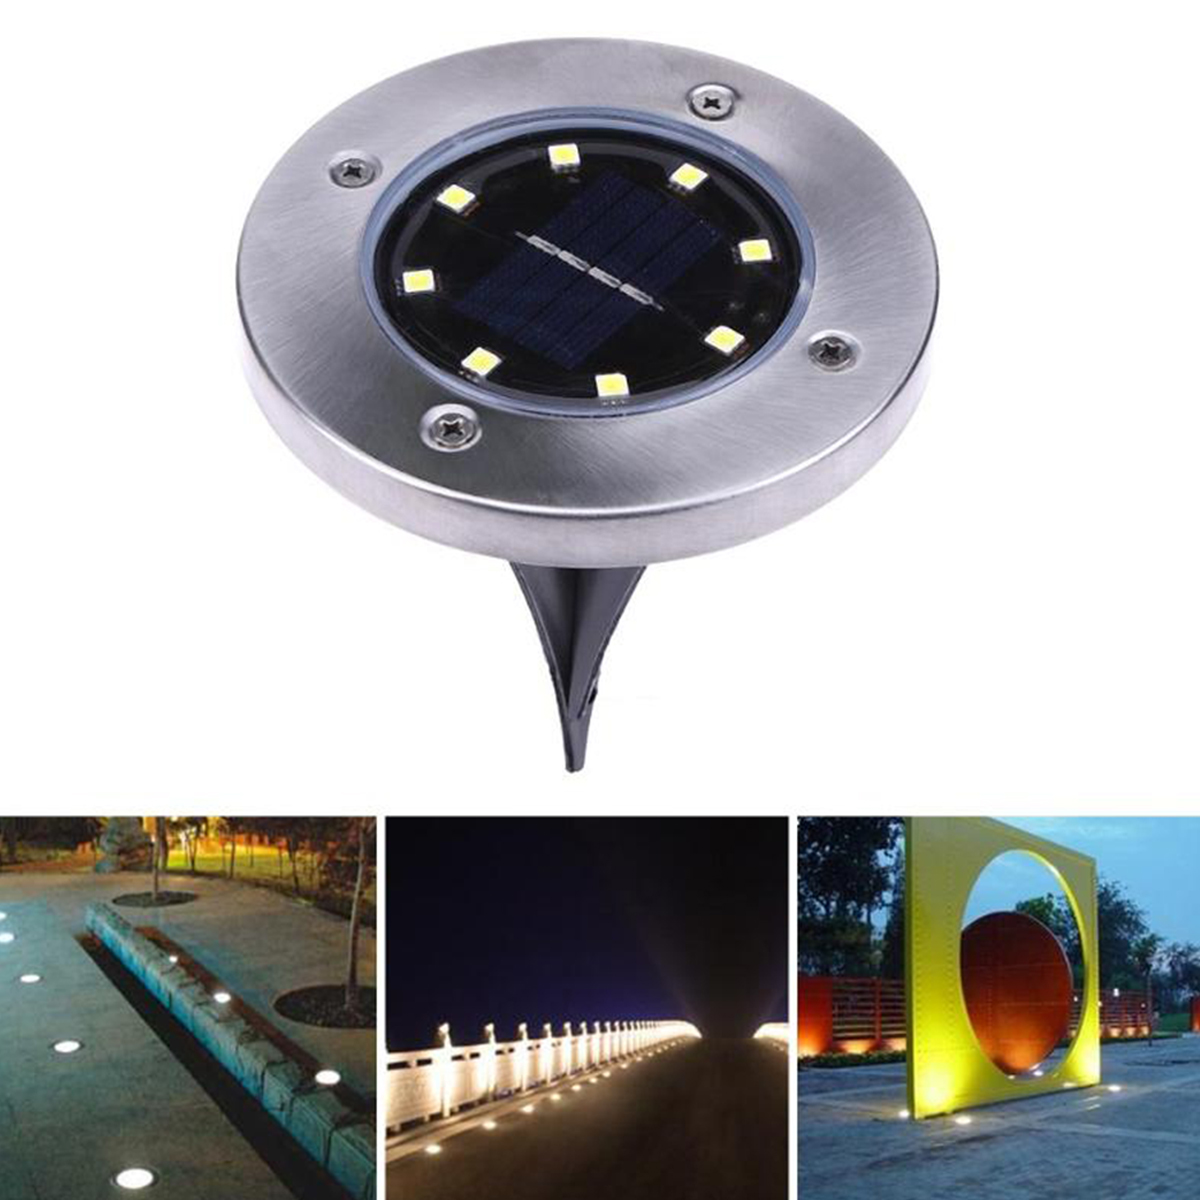 Cool/warm White 8 Led Solar Power Buried Light Ground Lamp Outdoor Path Way Garden Decking Underground Lamps Dropshipping And To Have A Long Life. Led Underground Lamps